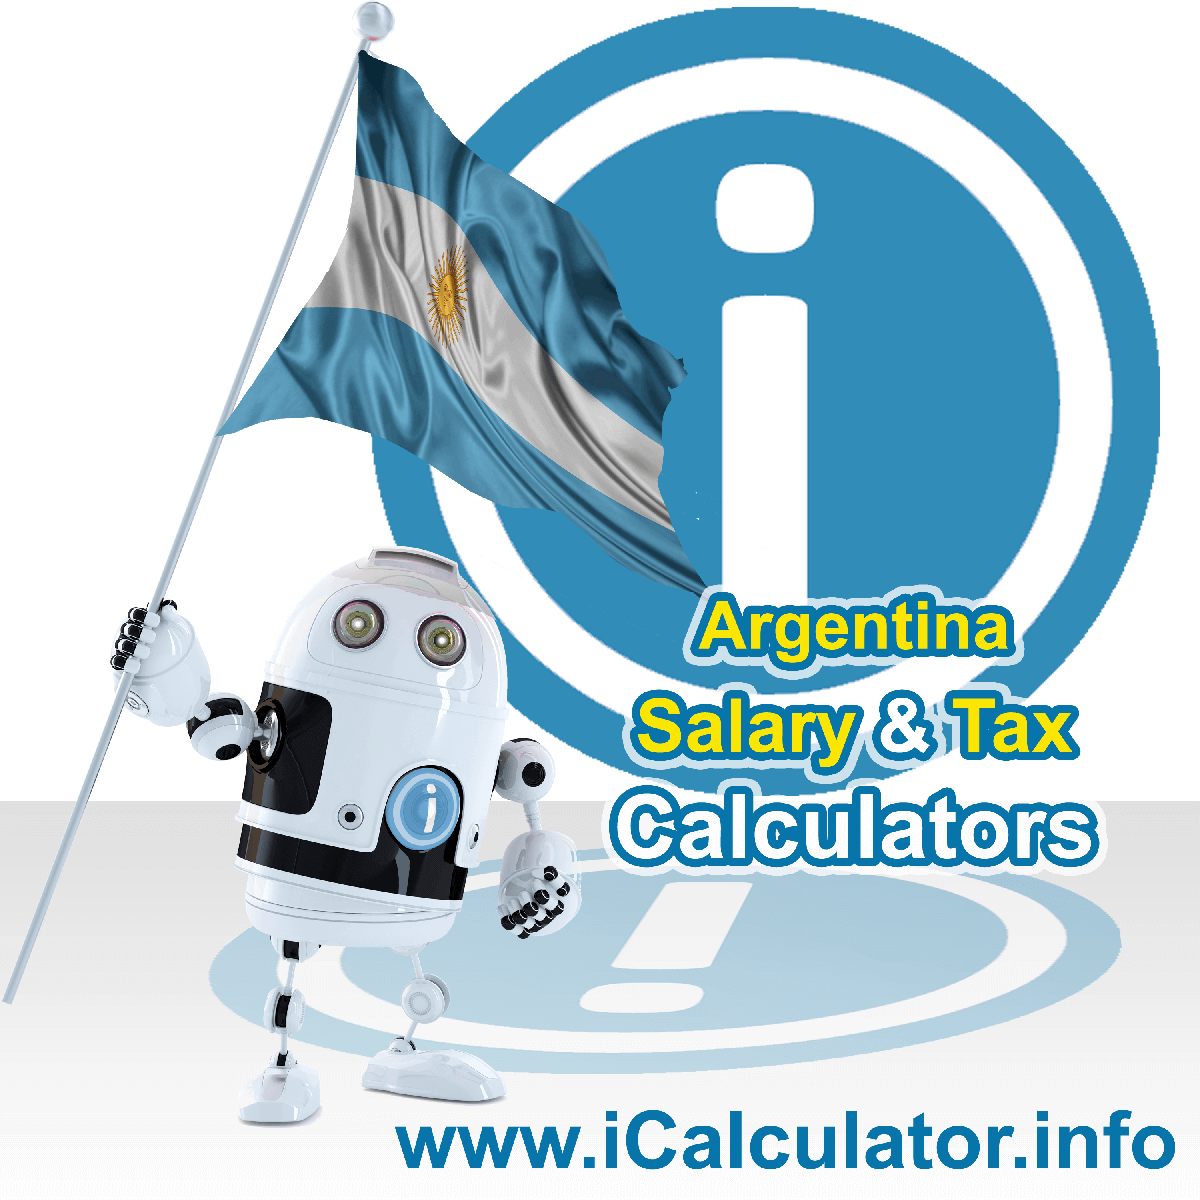 Argentina Wage Calculator. This image shows the Argentina flag and information relating to the tax formula for the Argentina Tax Calculator